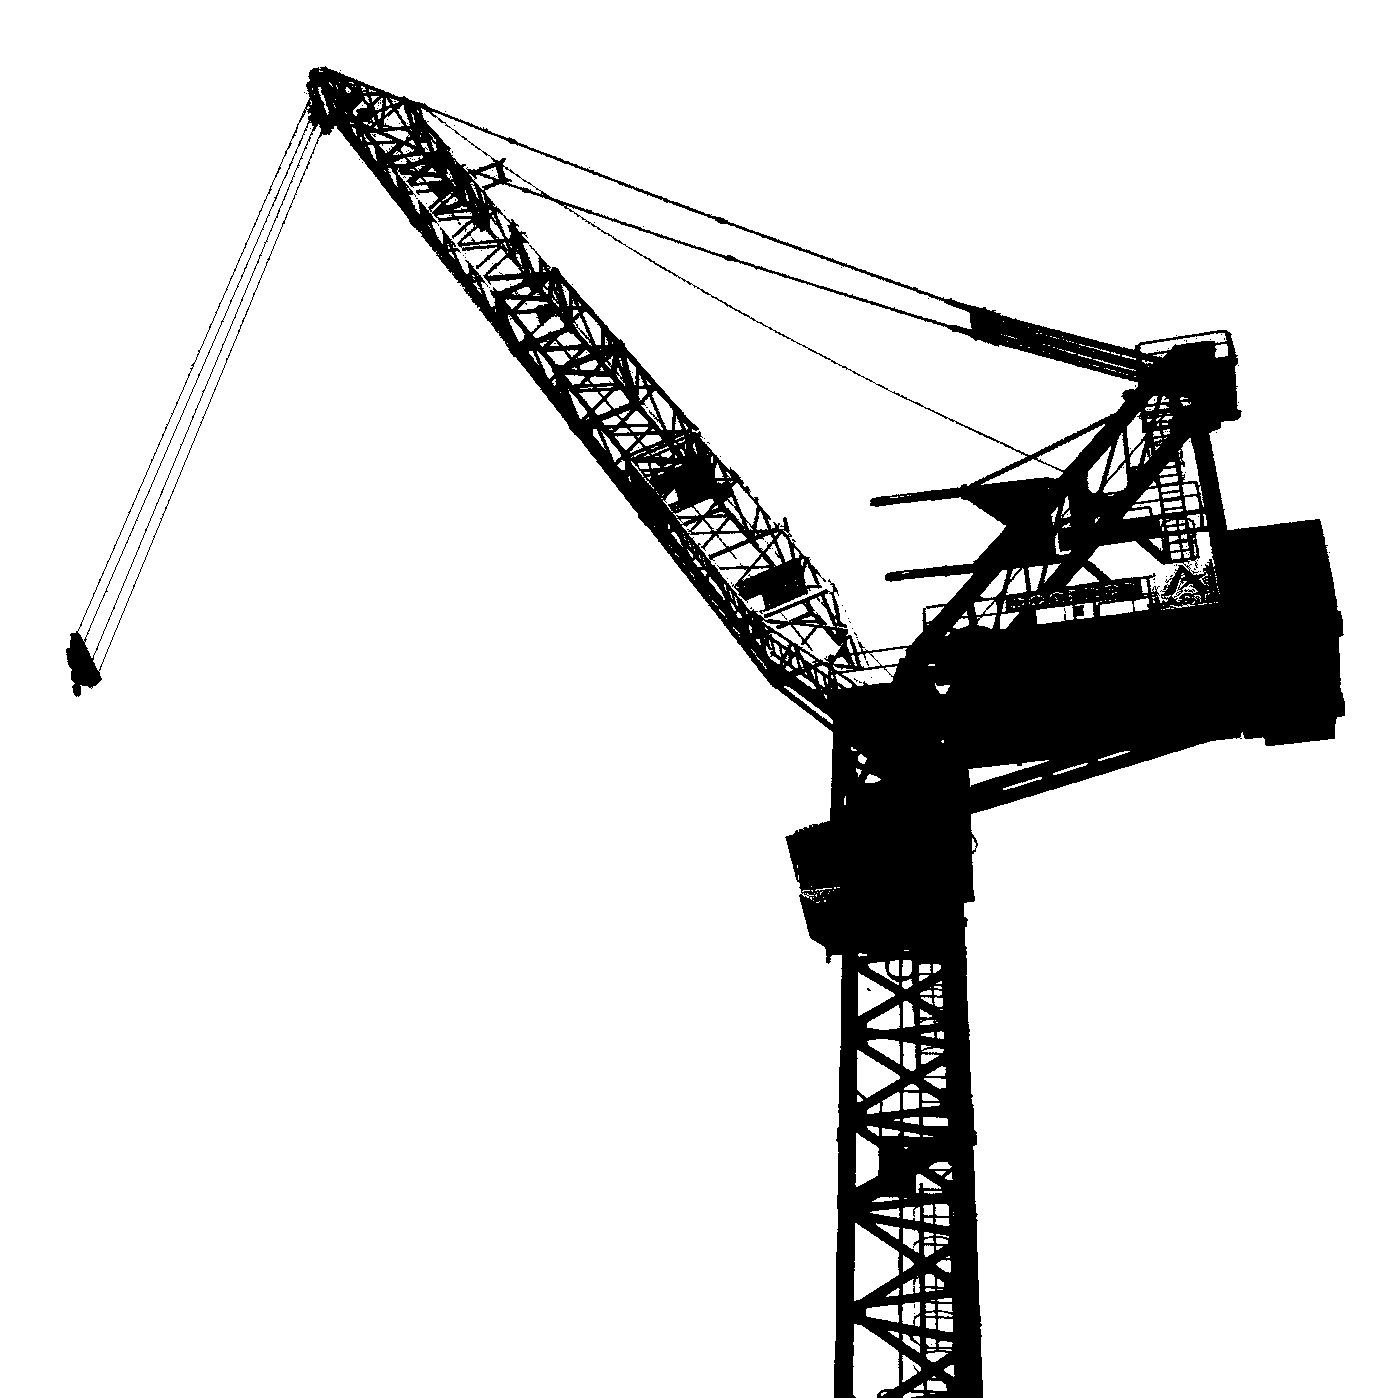 Construction crane question askscience for The crain